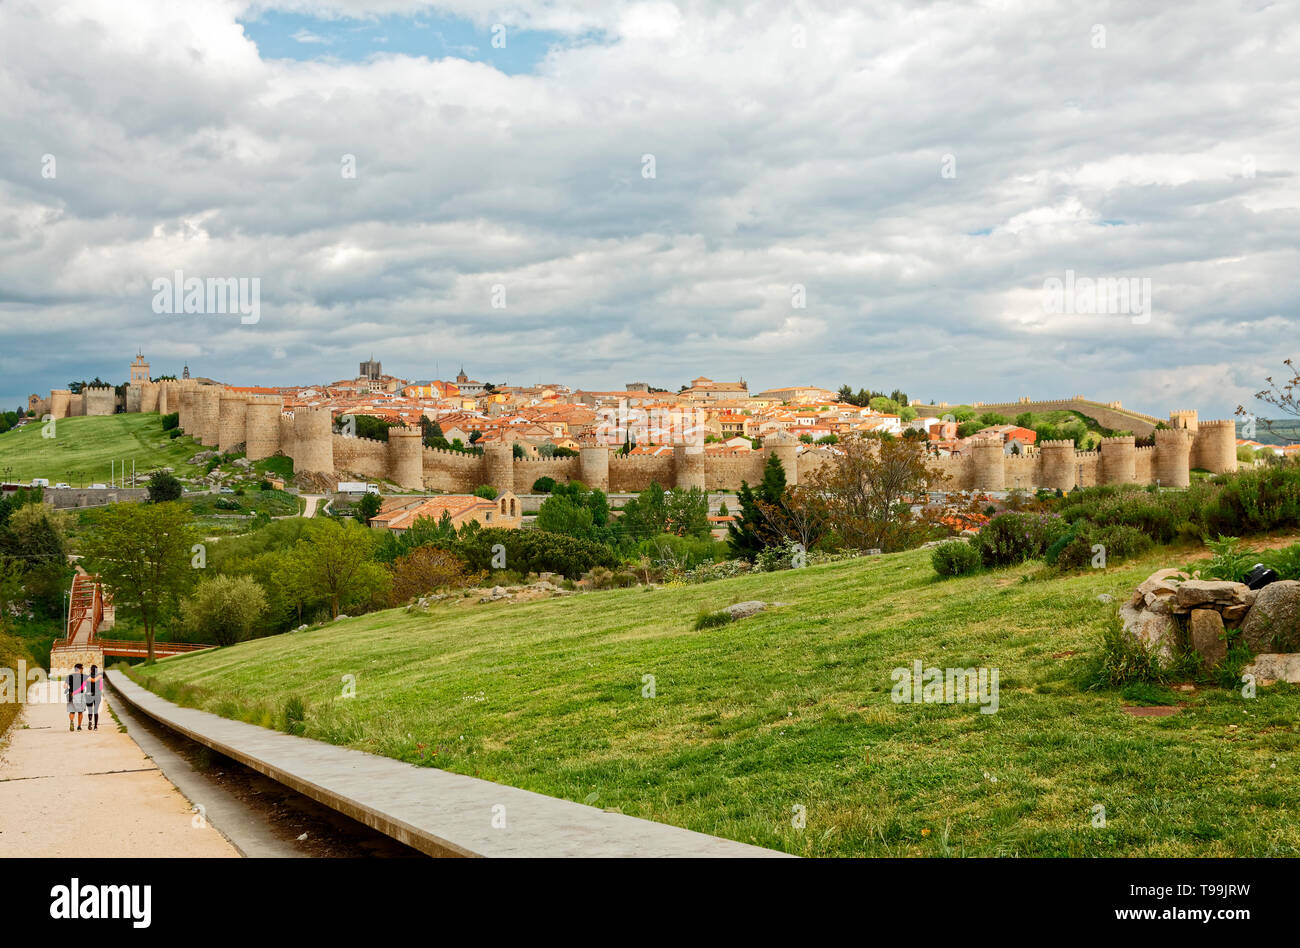 walled city; medieval; distant view; semicircular towers; tiled roofs, couple walking, landscape, Europe; Avila; Spain; spring; horizontal - Stock Image